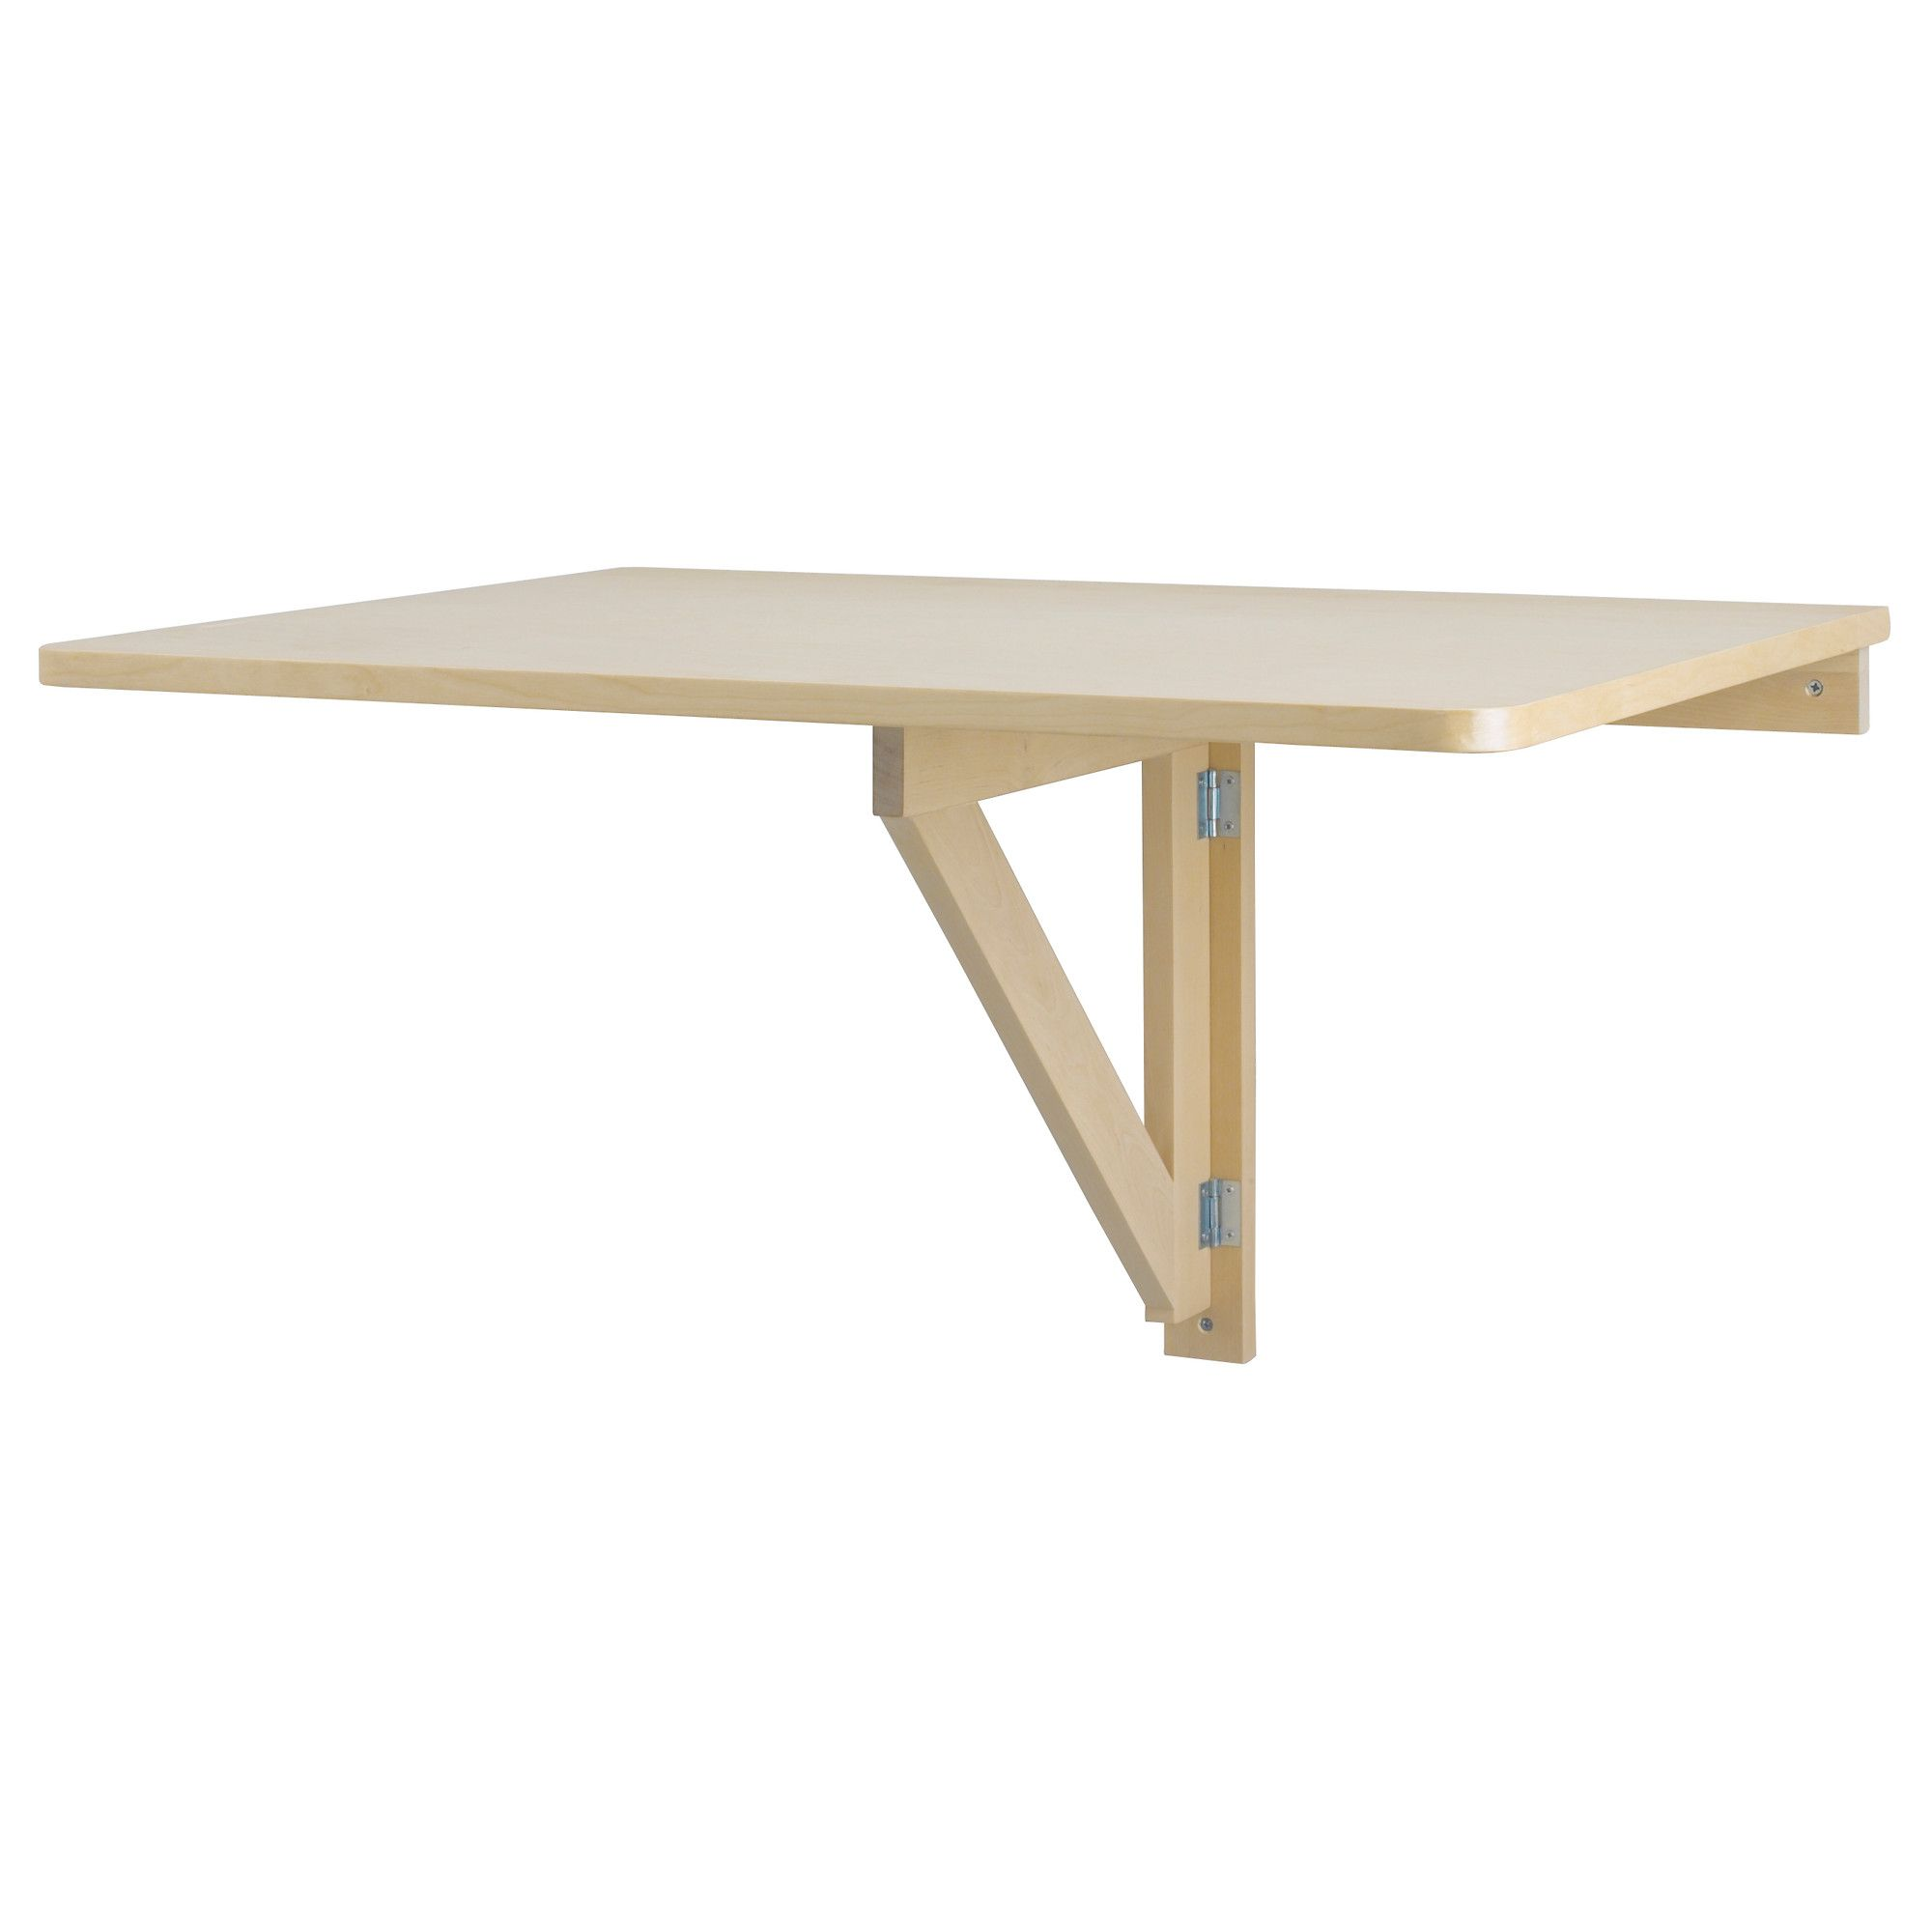 Ikea Us Furniture And Home Furnishings Drop Leaf Table Wall Mounted Folding Table Hinged Table